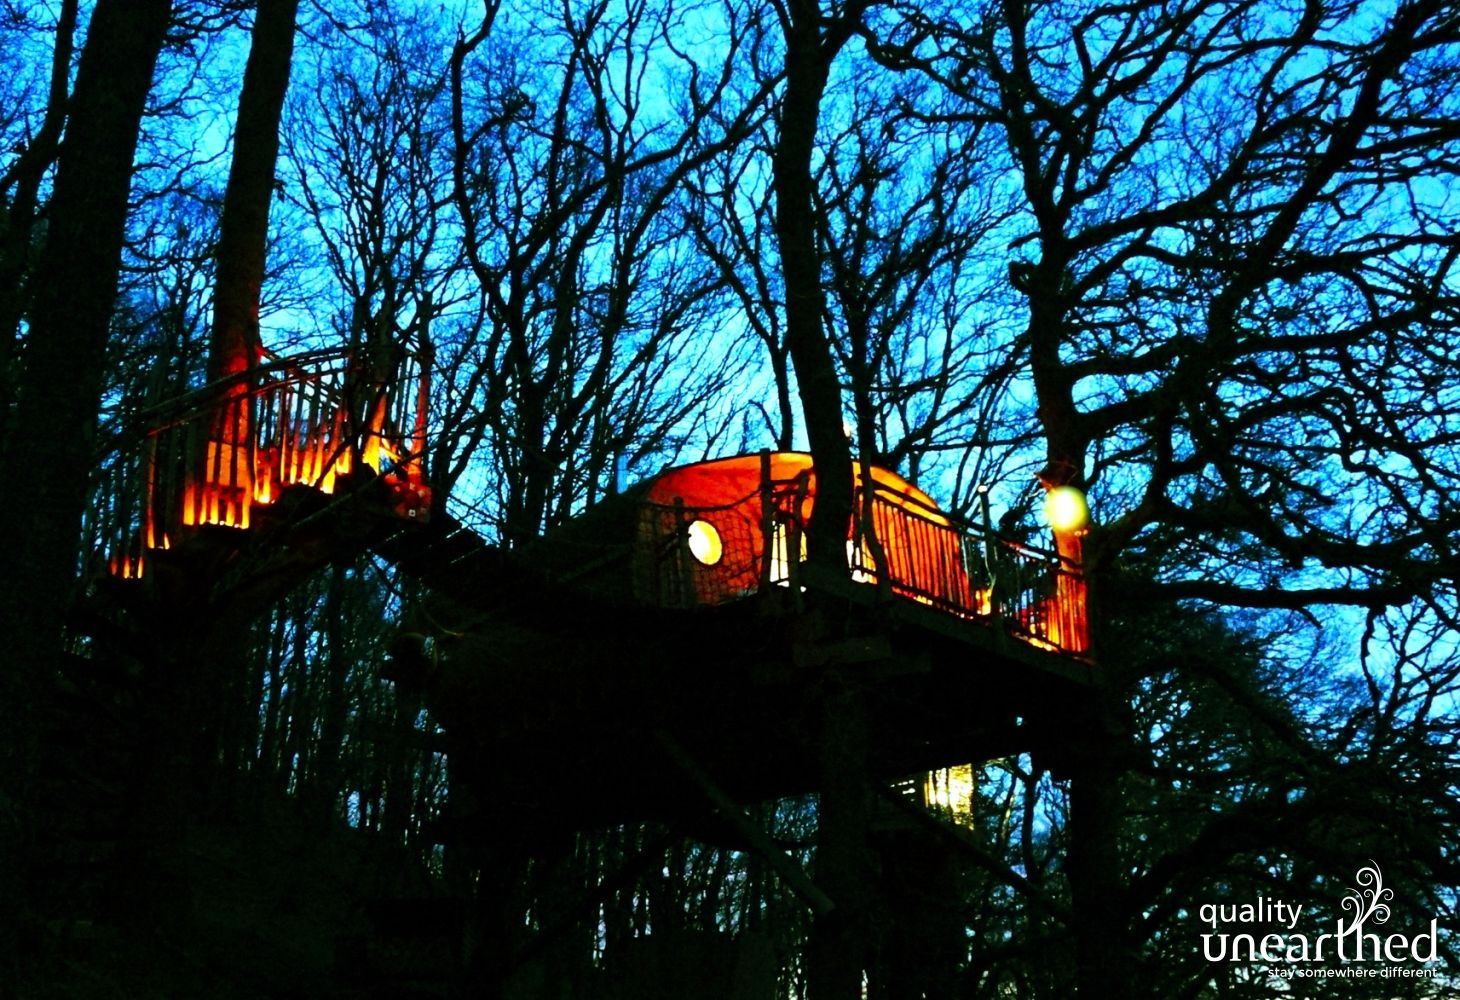 A treehouse big enough for a family sits high above the photographer on stilts in the middle of the woods. It is dusk and the lights are on